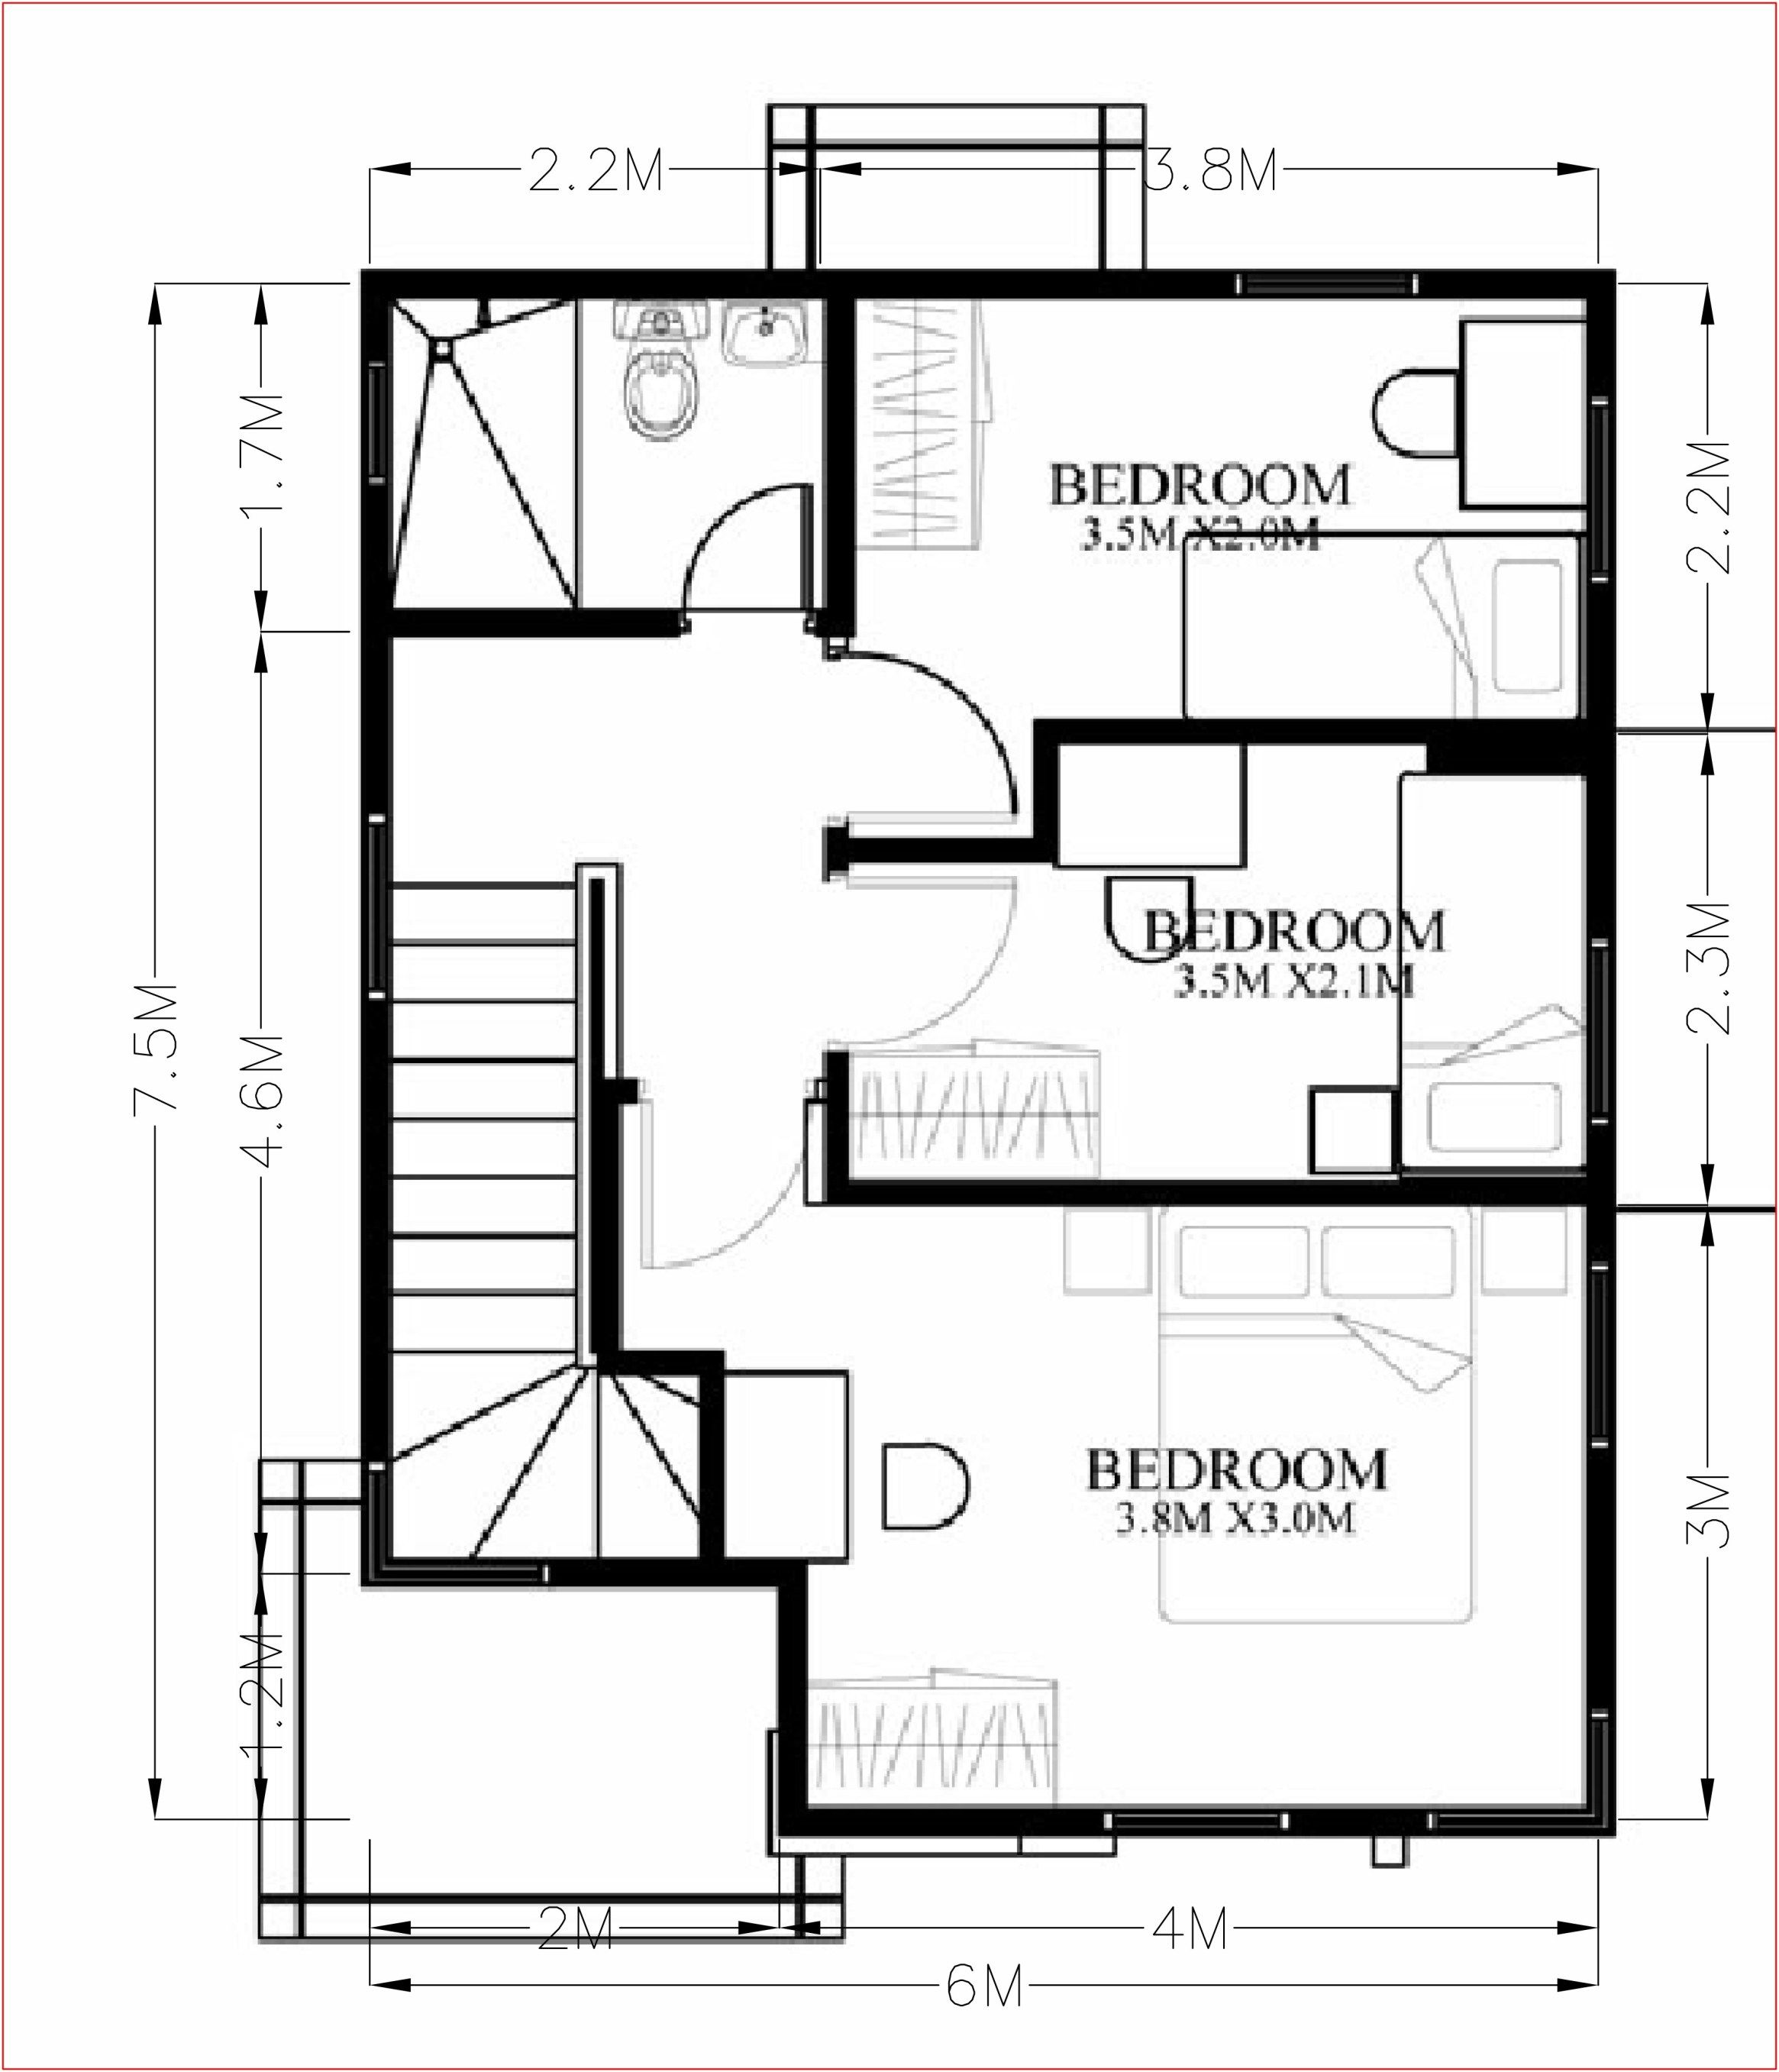 Small Home Design Plan 6x7 5m With 4 Bedrooms Home Design With Plan Small House Design Home Design Plan House Design